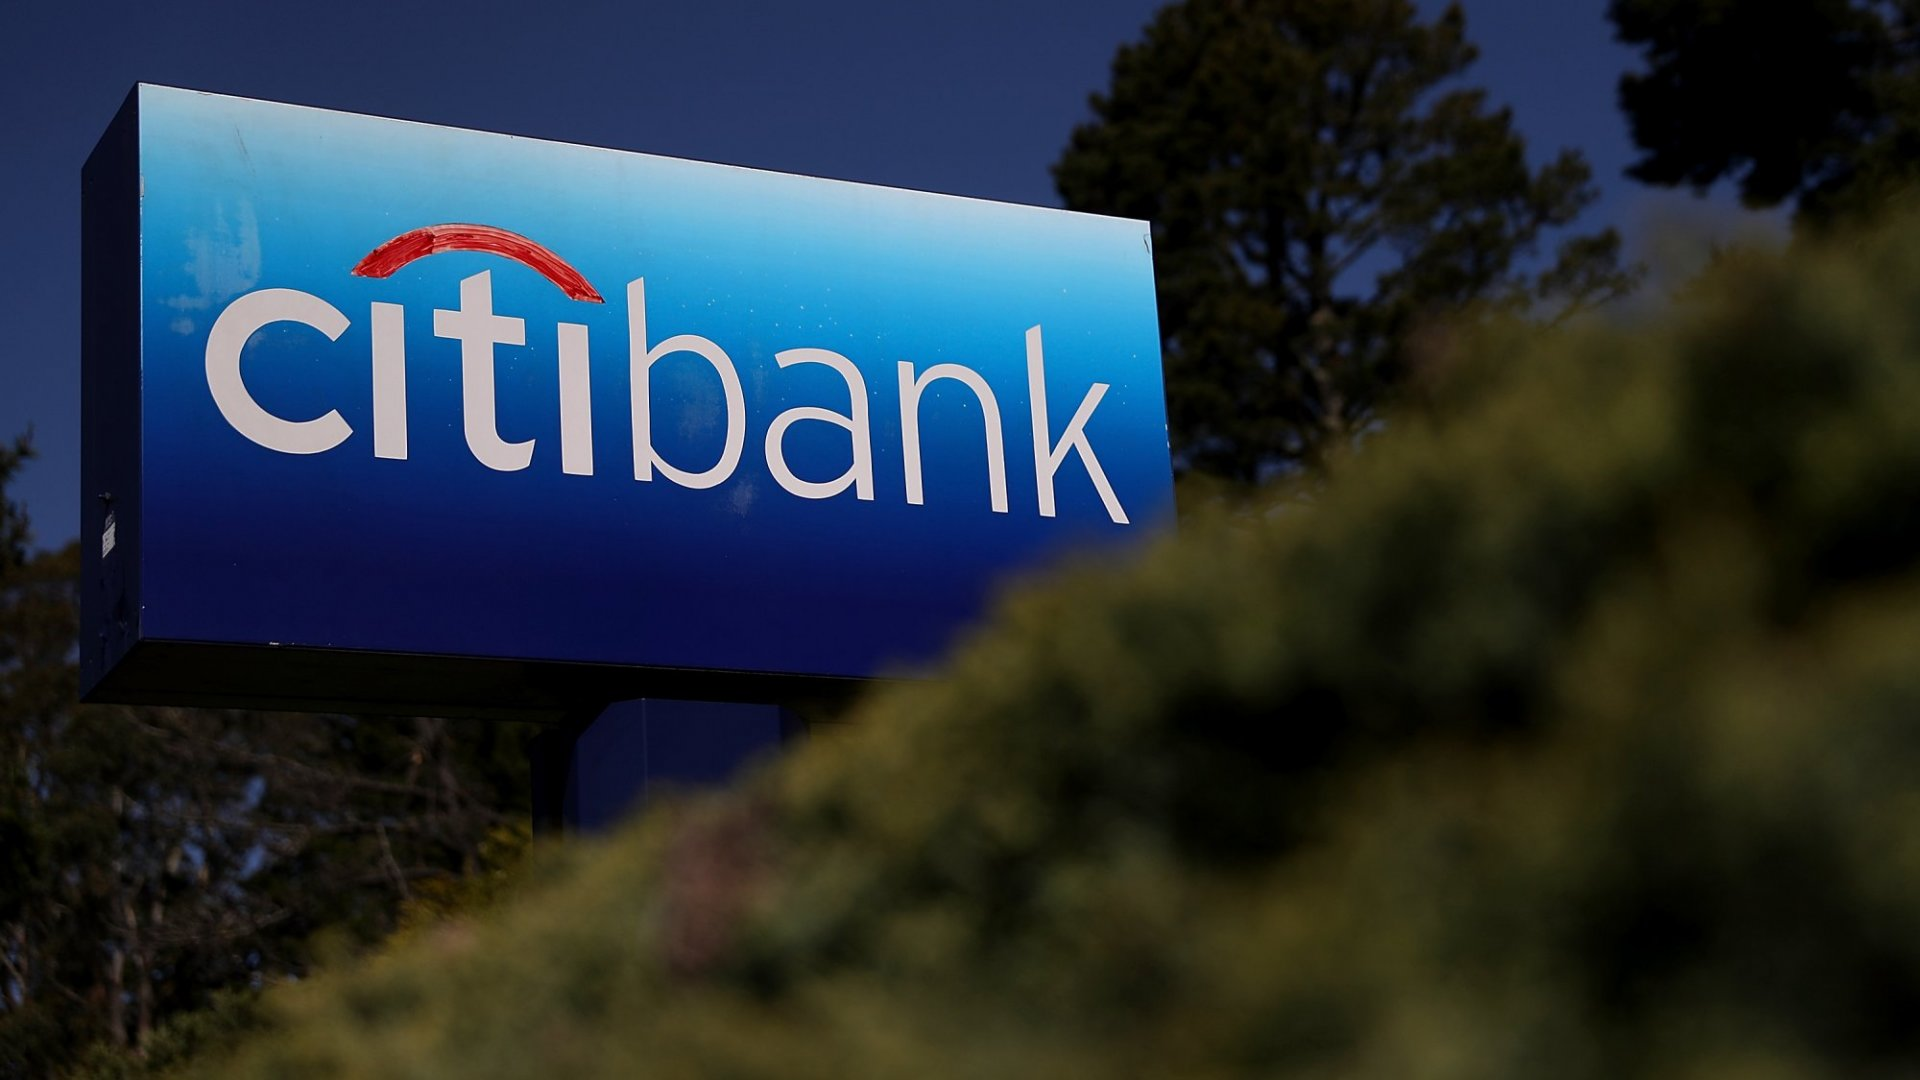 How Citibank's New Policy Almost Ruined My Vacation